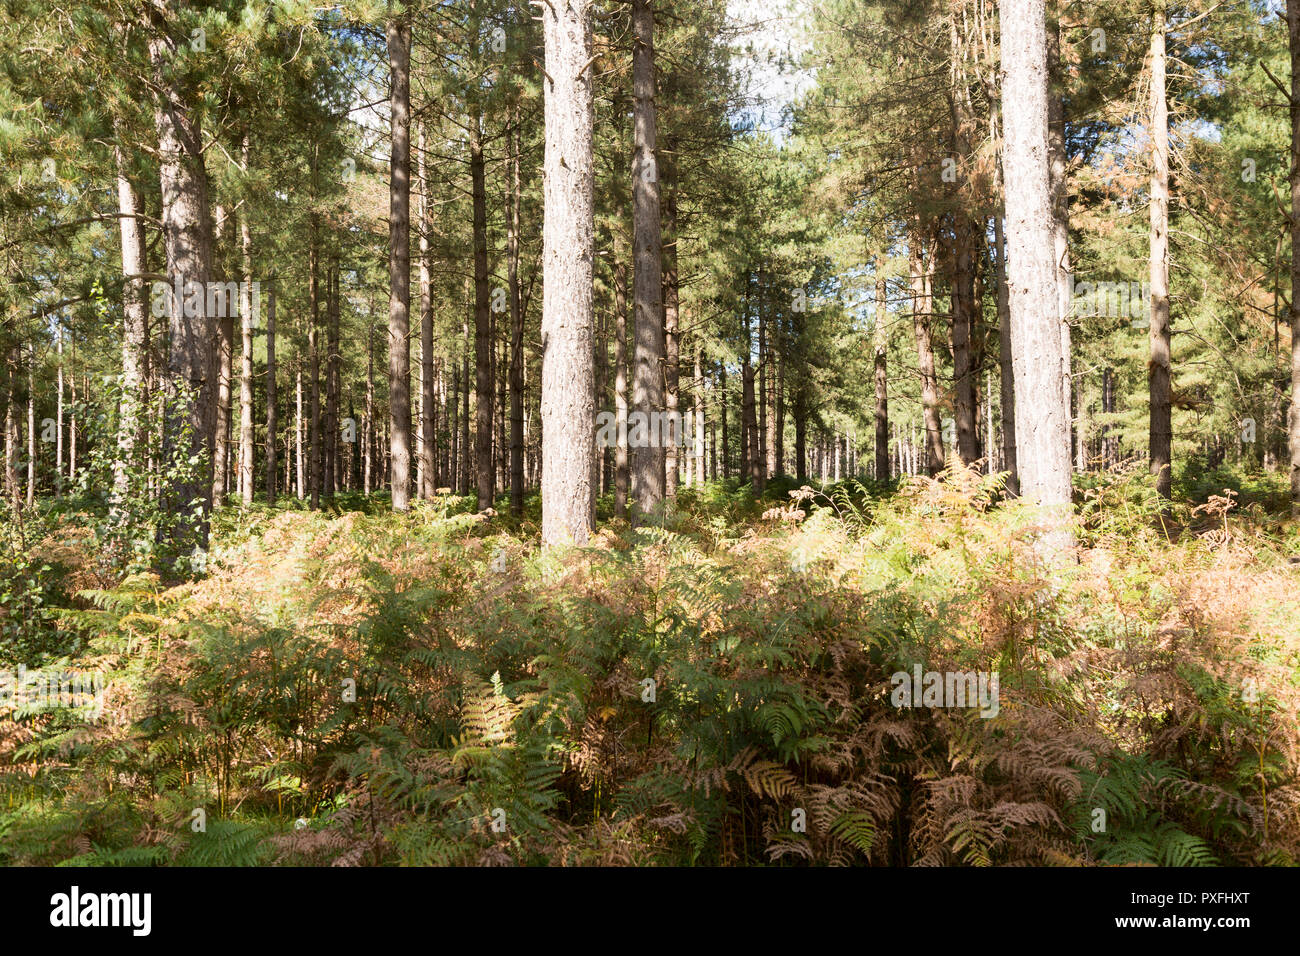 Rows of coniferous pine trees in forestry plantation, Rendlesham Forest, Suffolk, England, UK - Stock Image